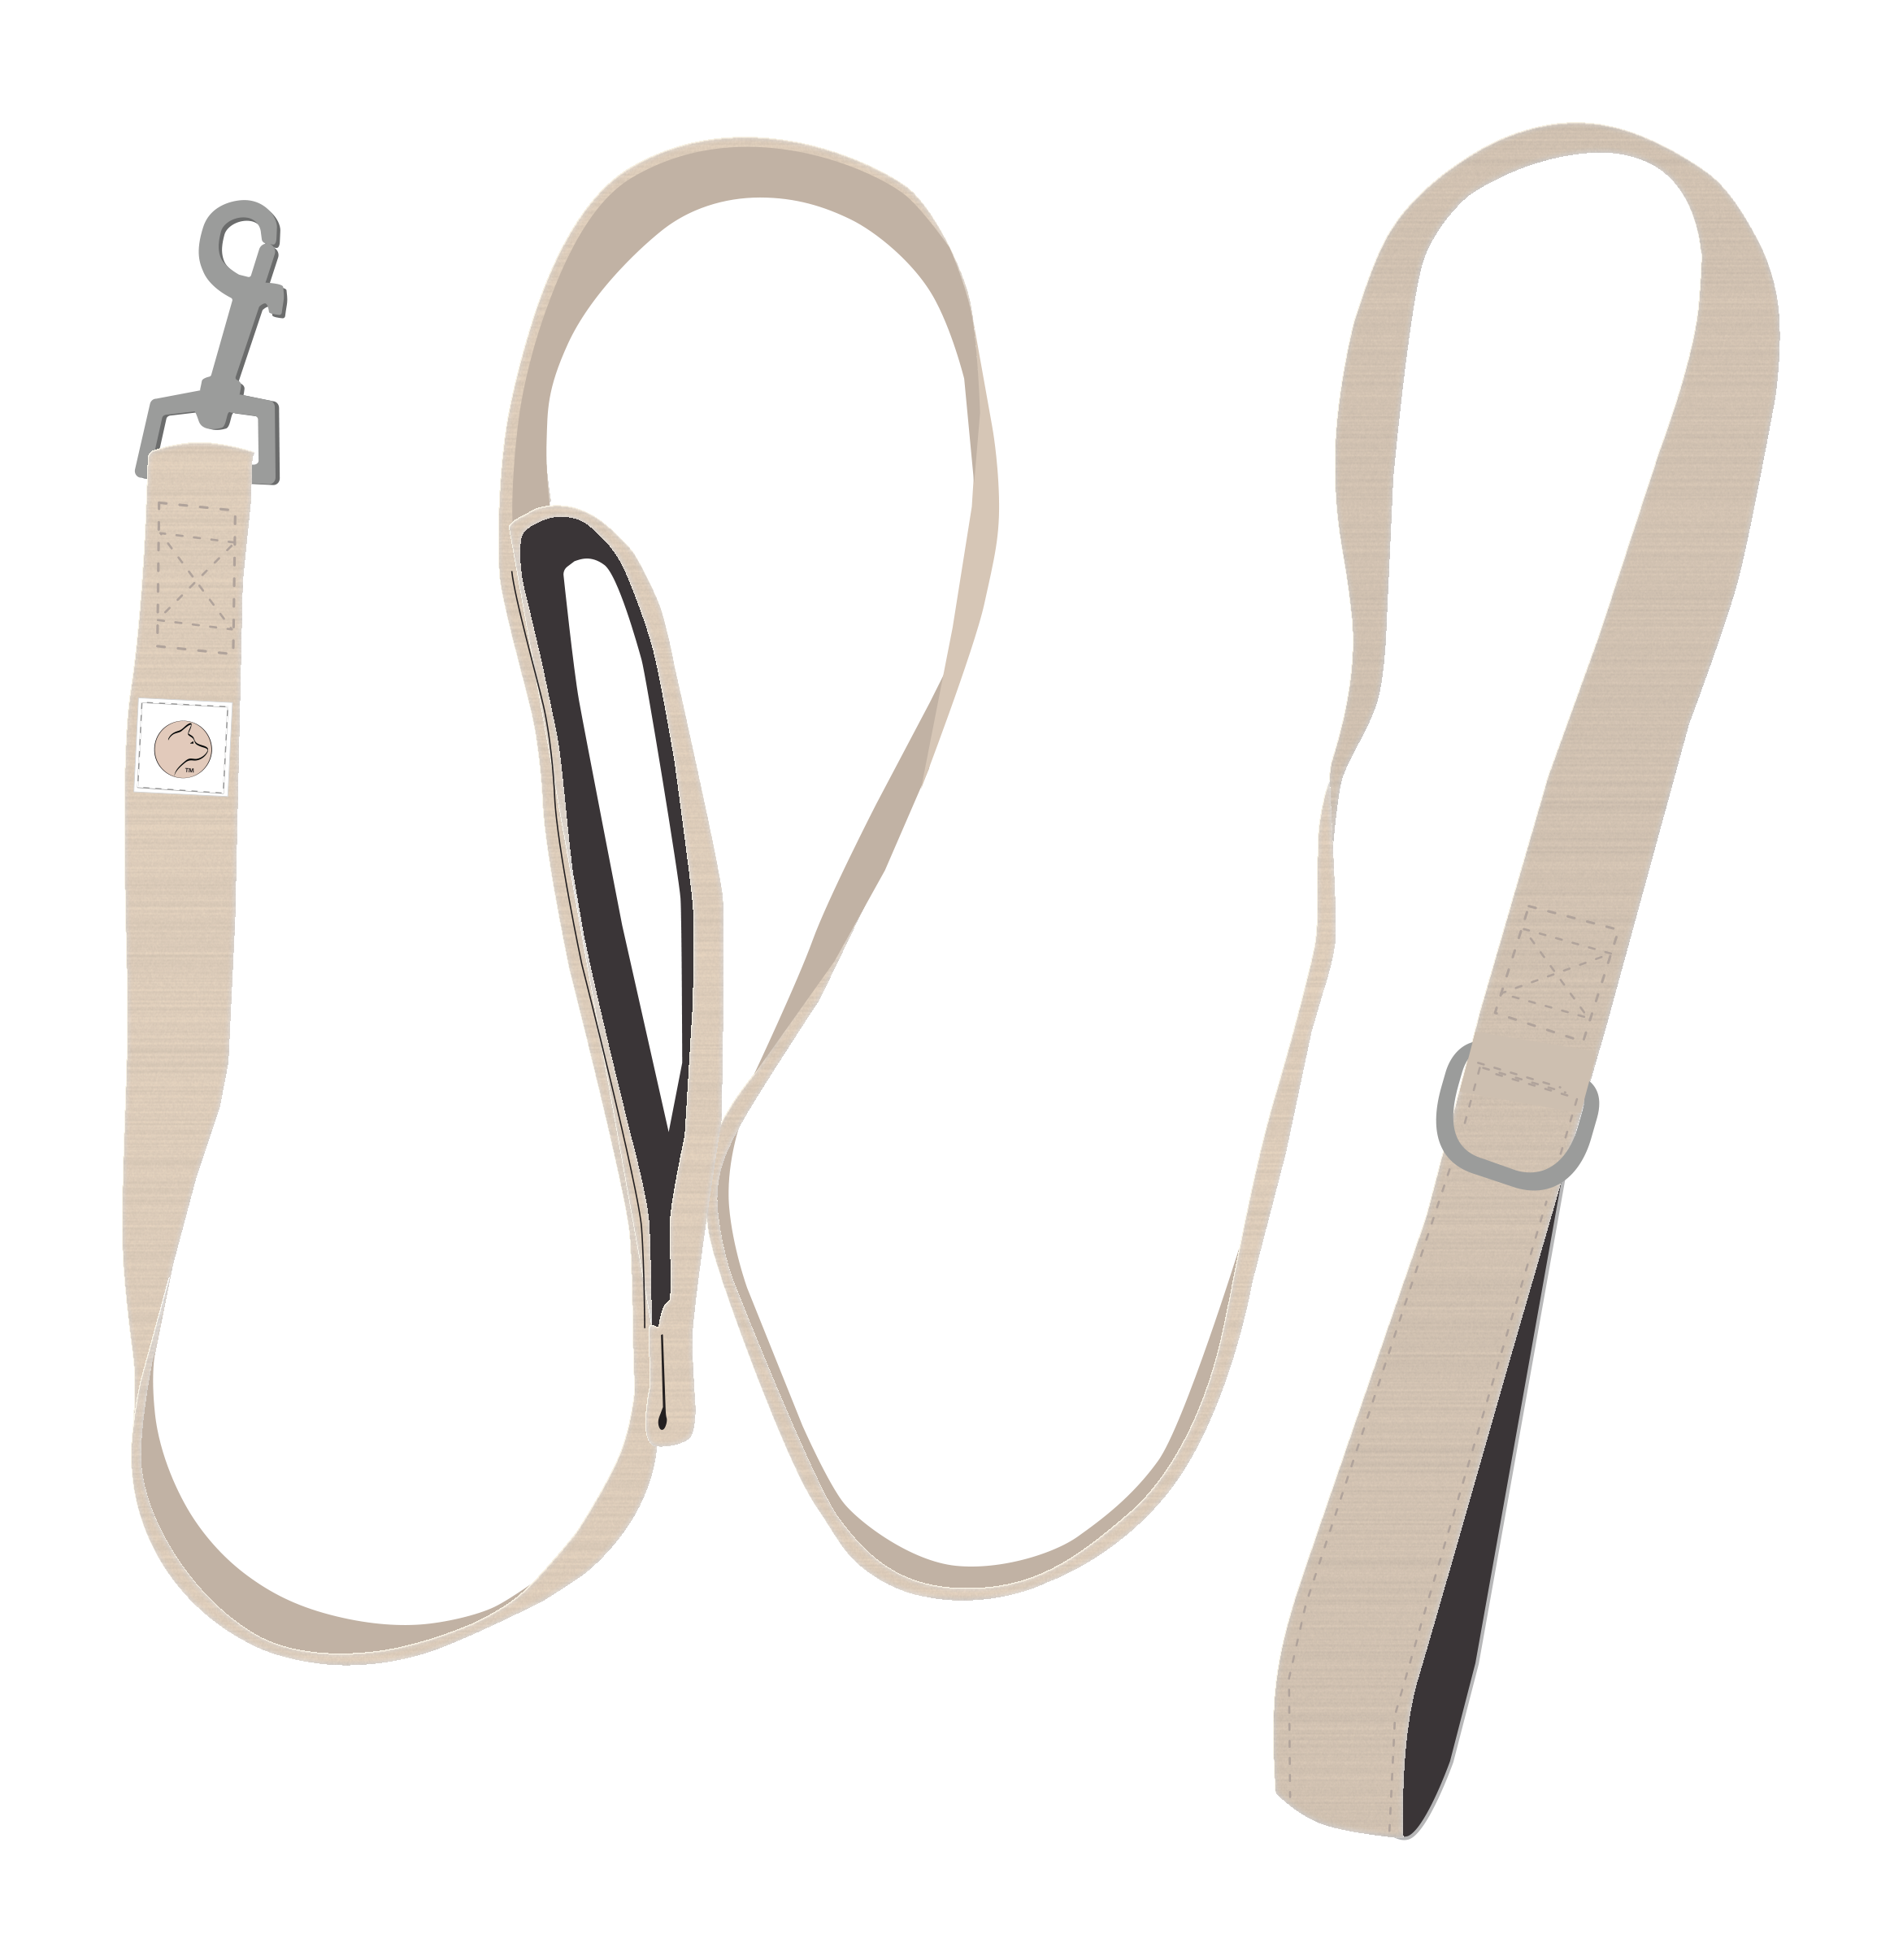 DOUBLE HANDLE LEASH... - A modern update for your furry friend, this Double Handle Leash is available in Champagne and Rose Gold. It's lightweight and machine washable. 100% Polyester with a silky, smooth finish.